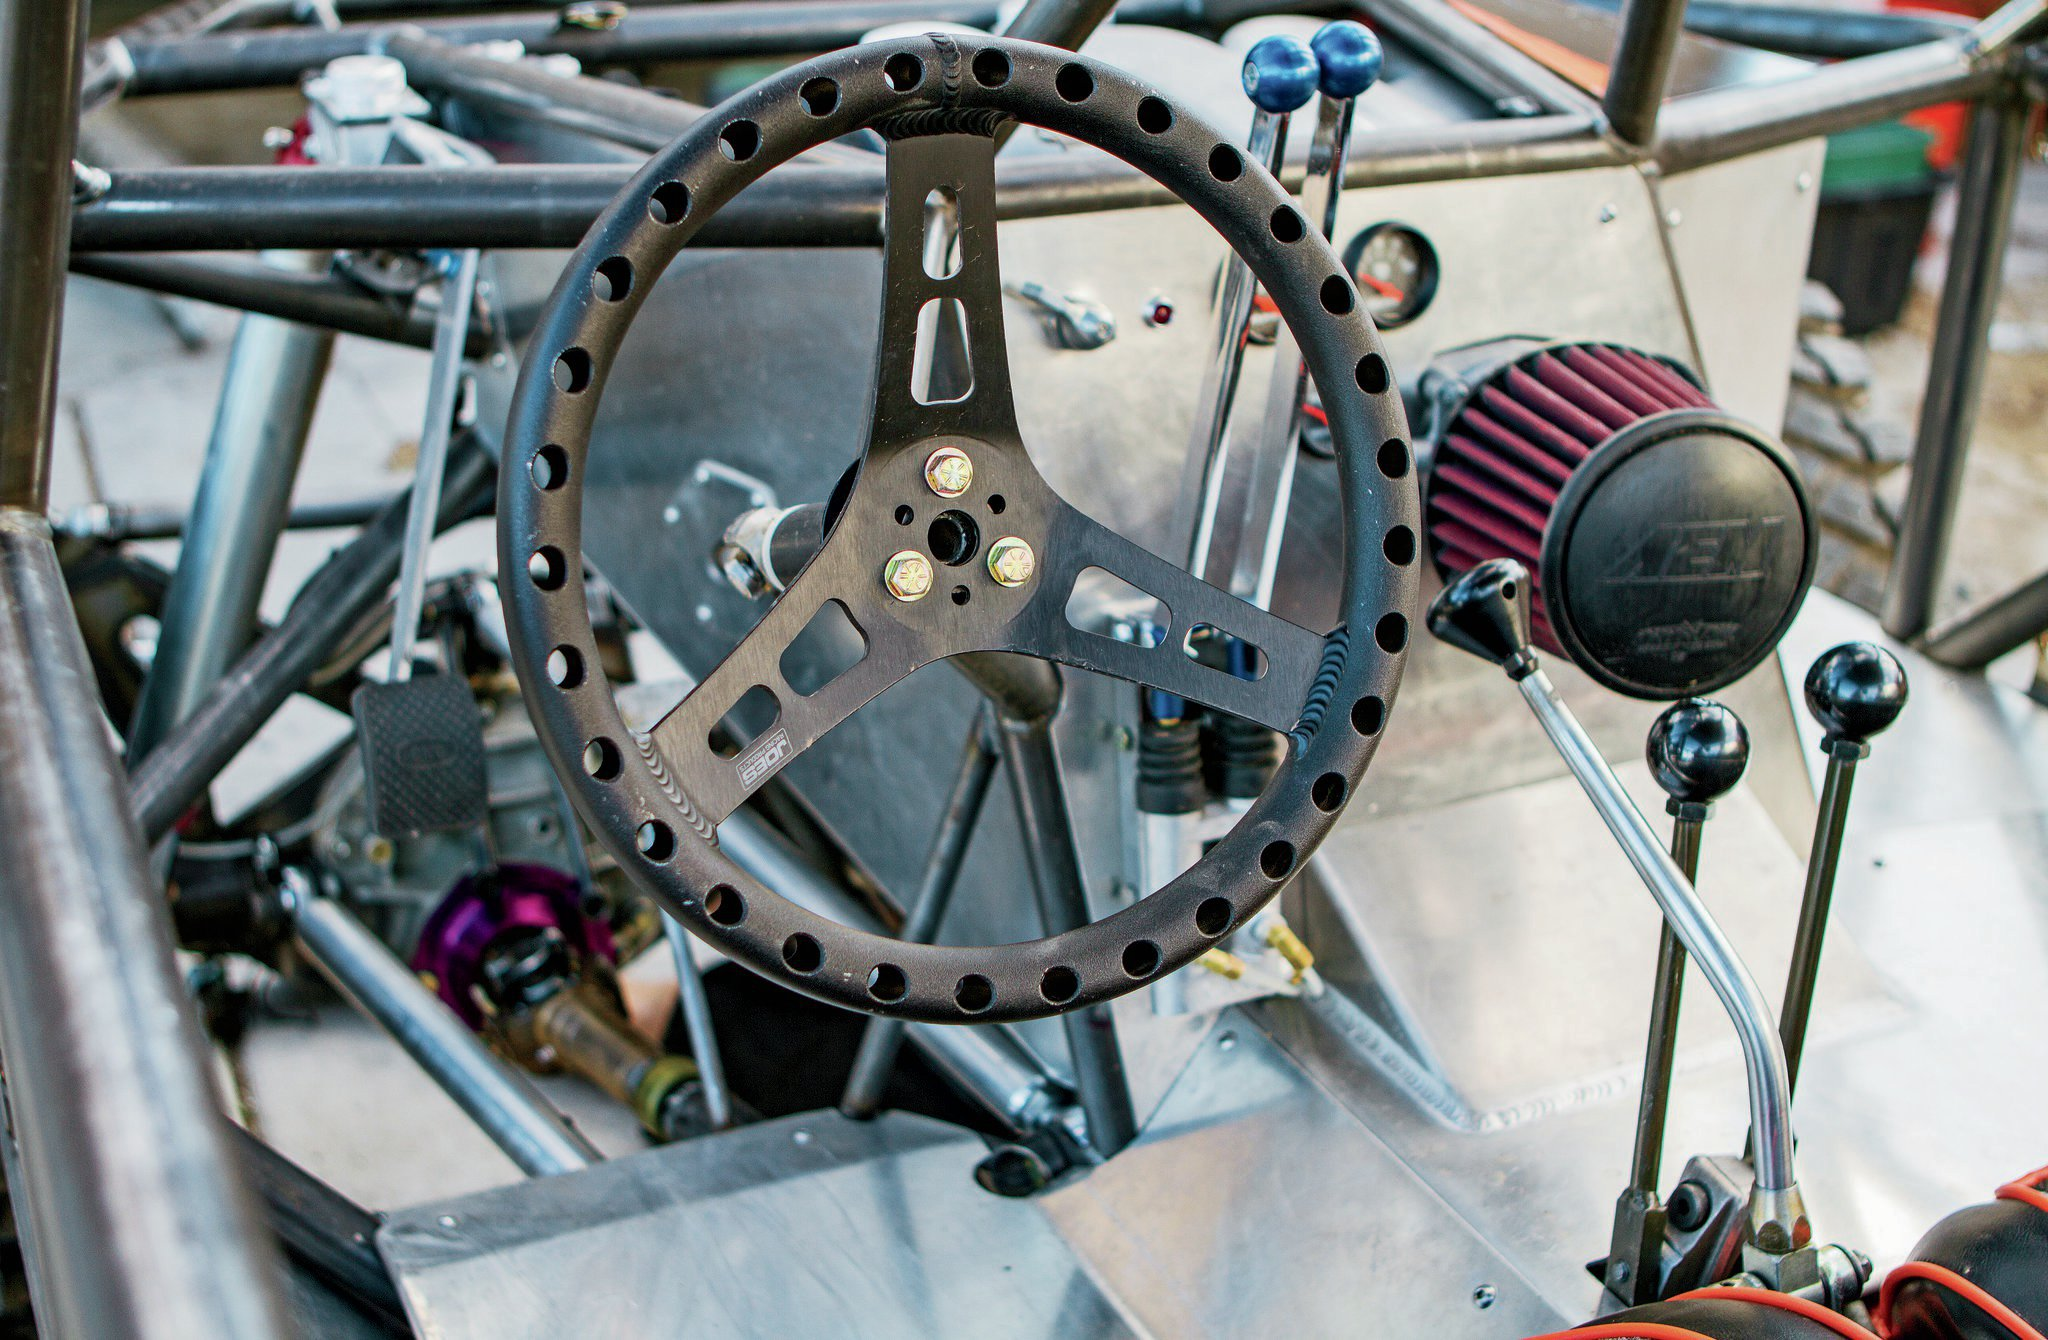 Steering consists of a Trail Gear full hydraulic system with the orbital valve mounted low on the chassis behind the custom aluminum firewall. This provides increased safety compared to mounting the orbital valve at the steering column and it gives Jesse an unimpeded forward view of crawling courses.